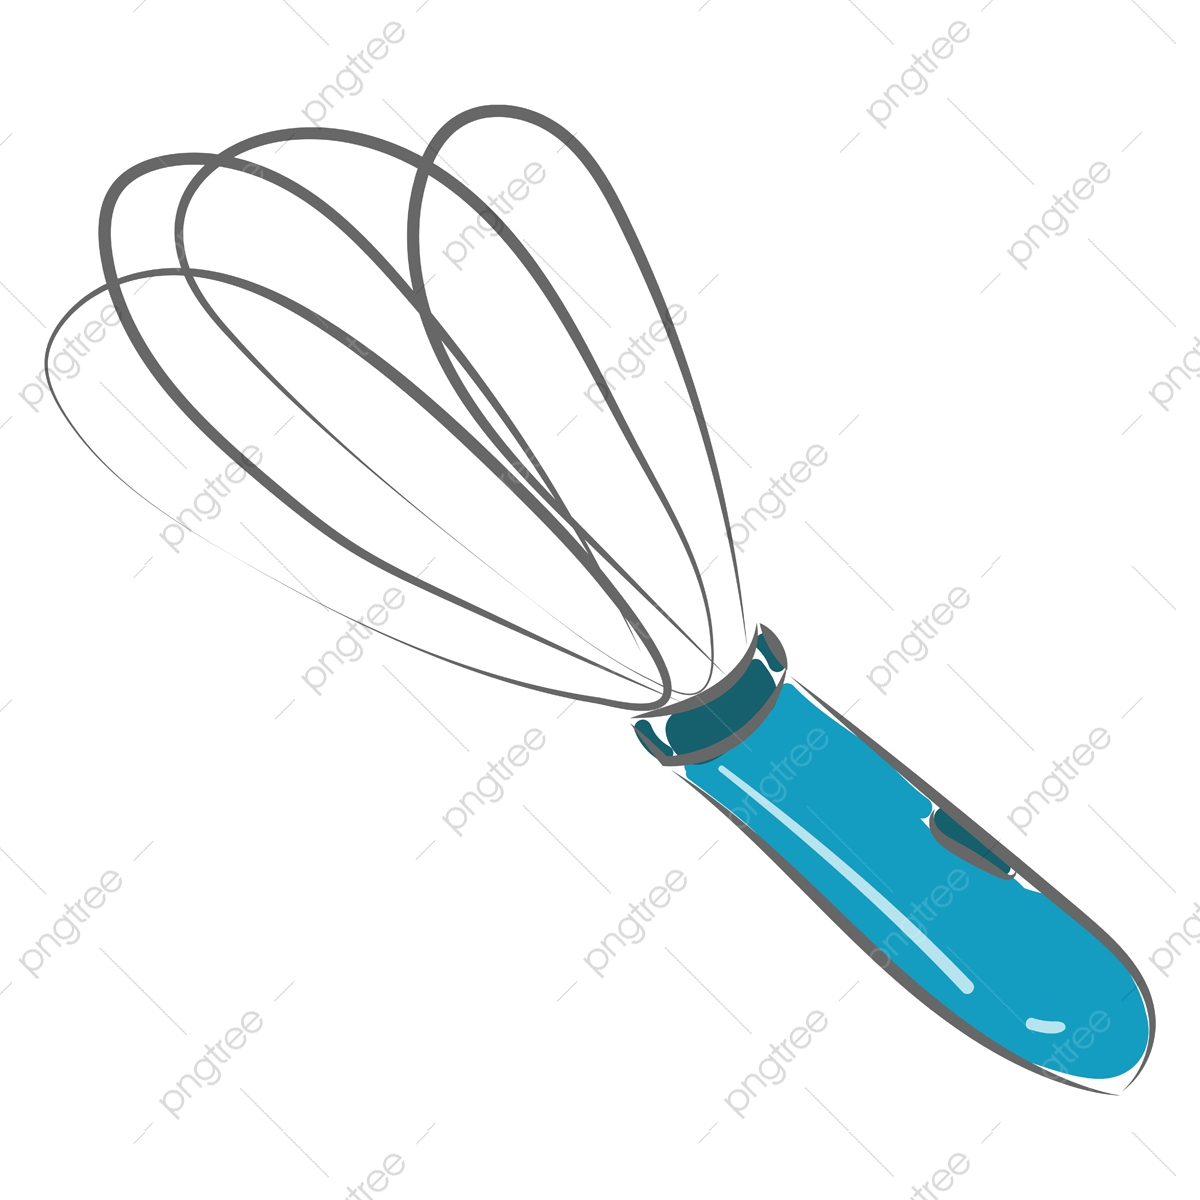 Whisks Png Vector Psd And Clipart With Transparent Background For Free Download Pngtree